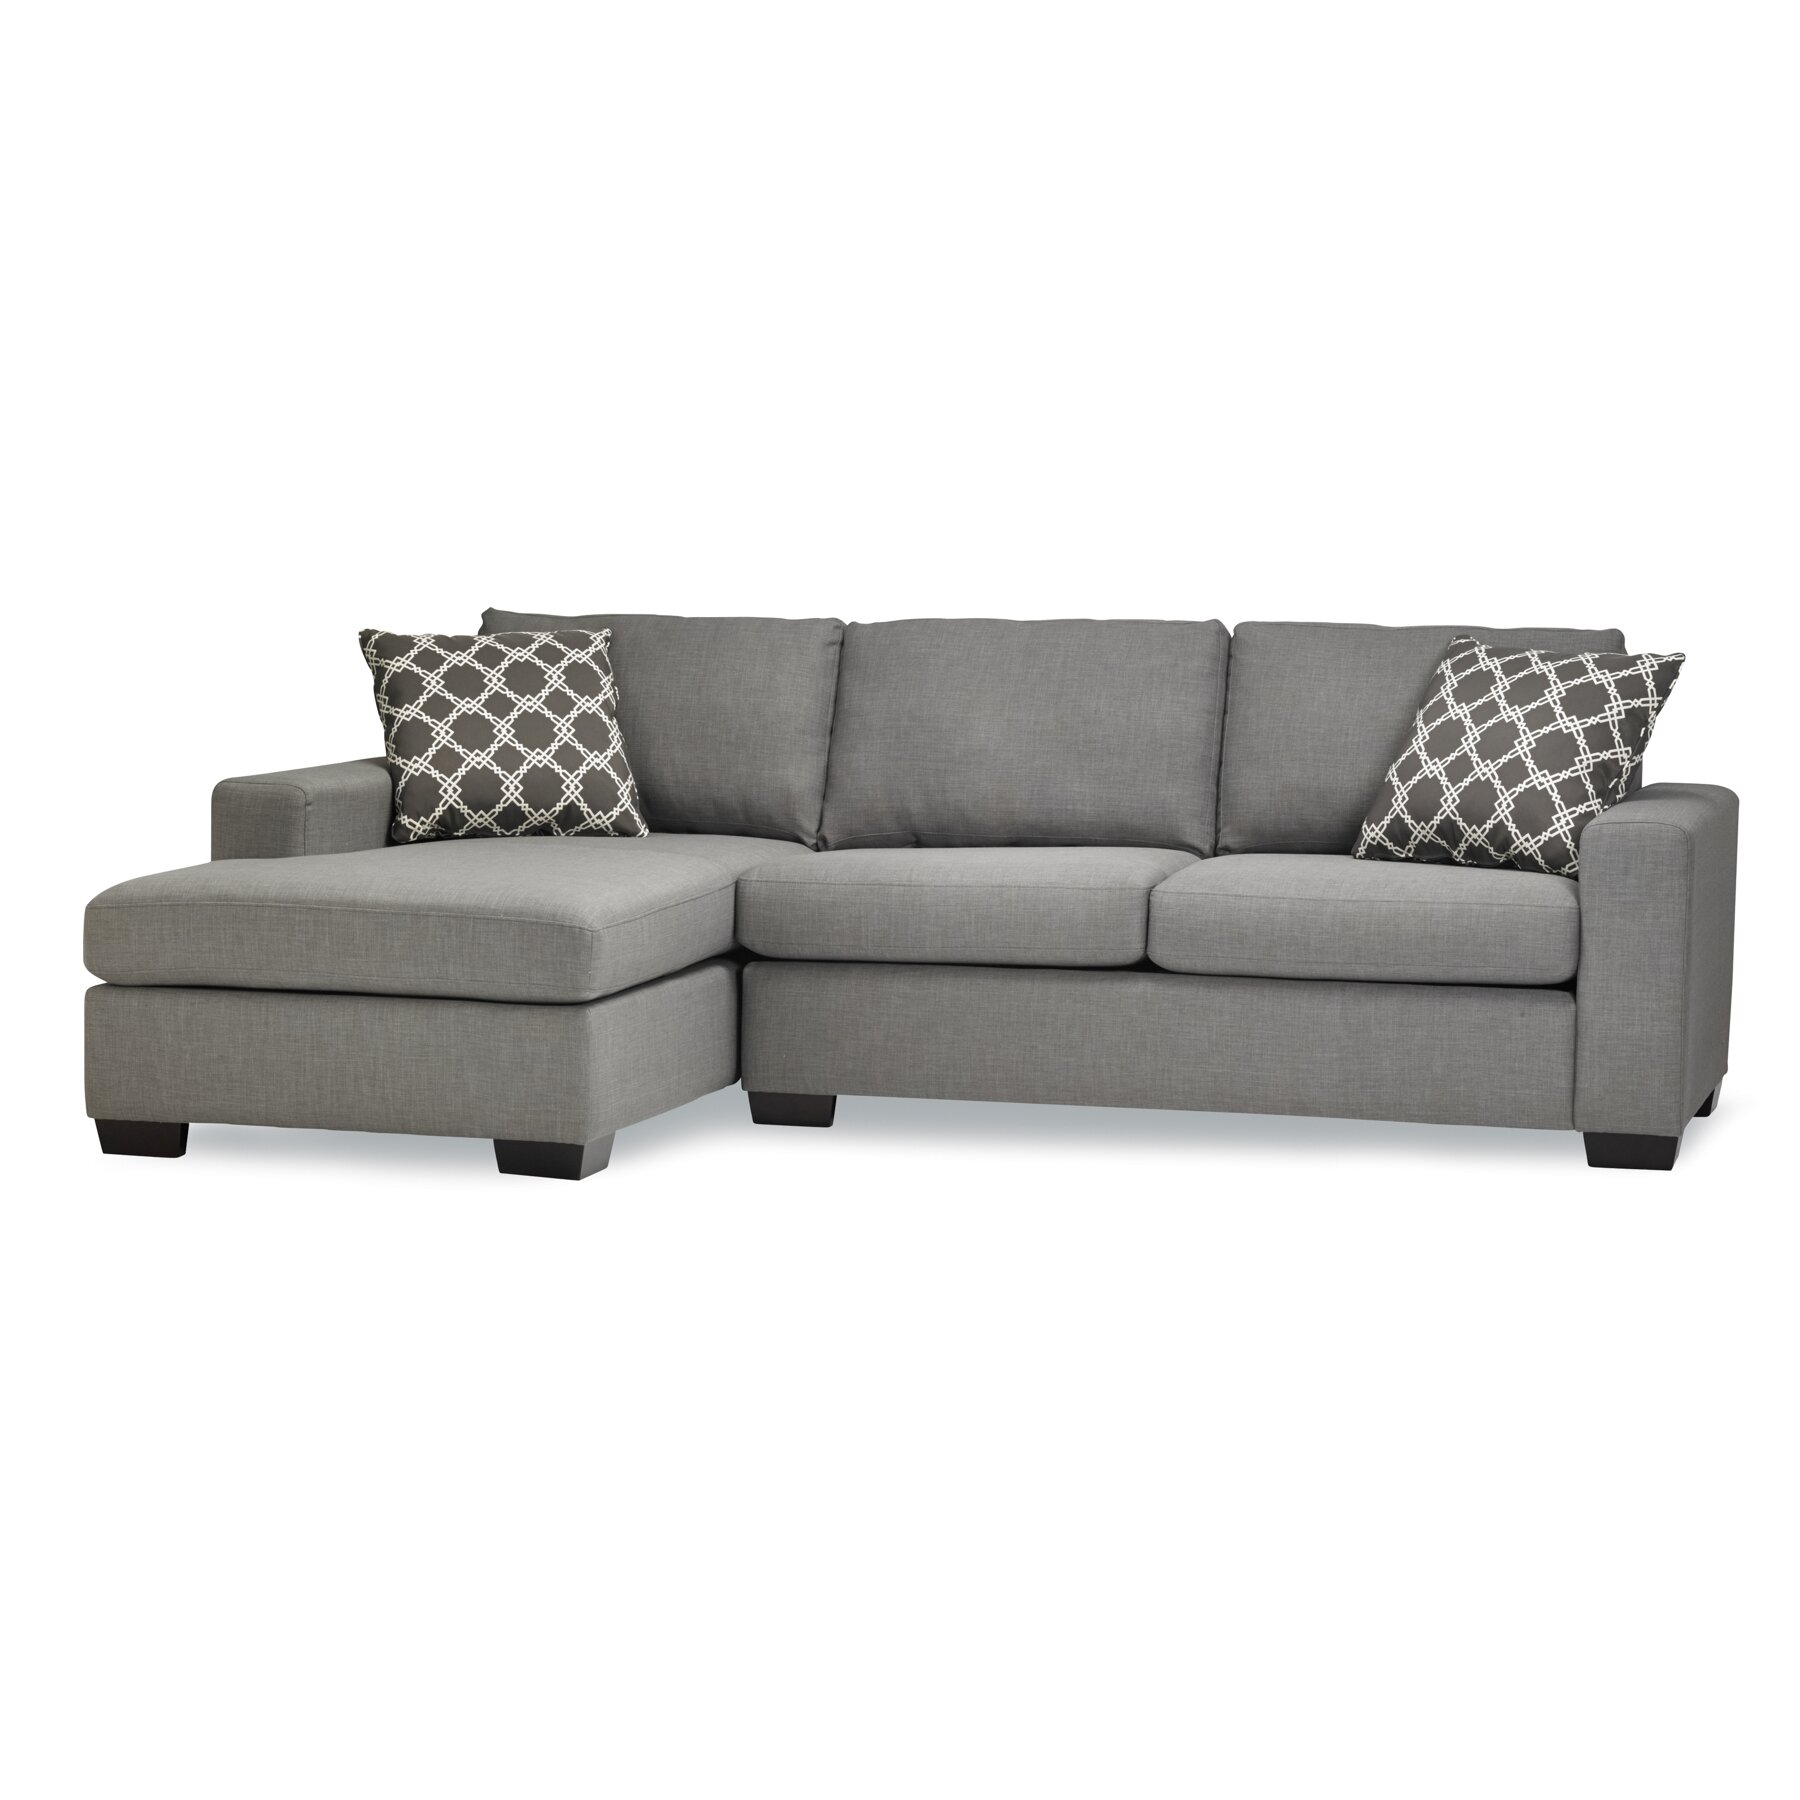 sofas to go mimi sleeper sectional reviews wayfair. Black Bedroom Furniture Sets. Home Design Ideas